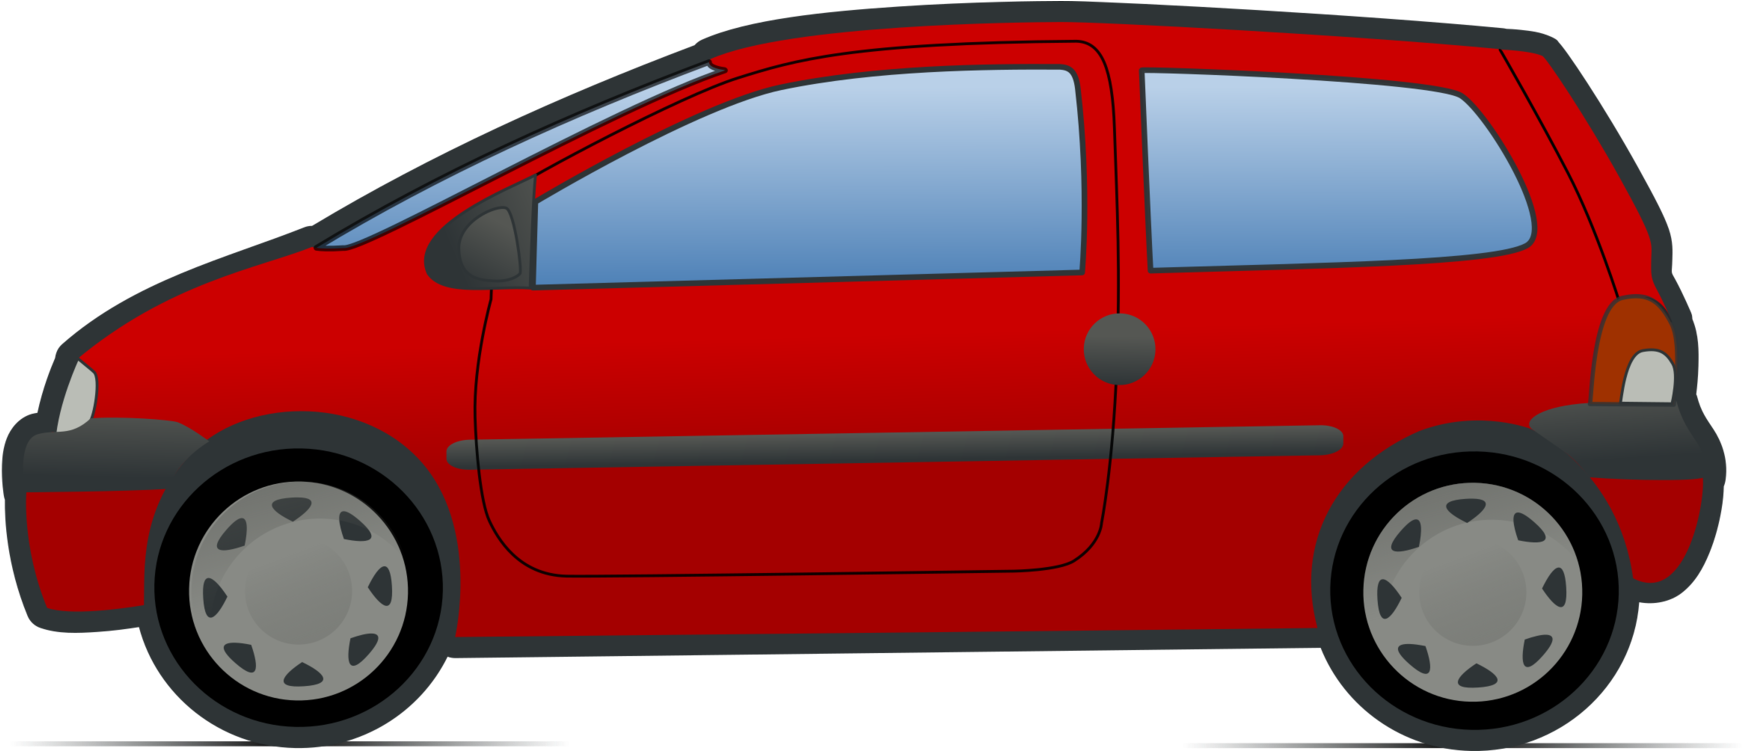 Minivan Cartoon Renault Twingo.